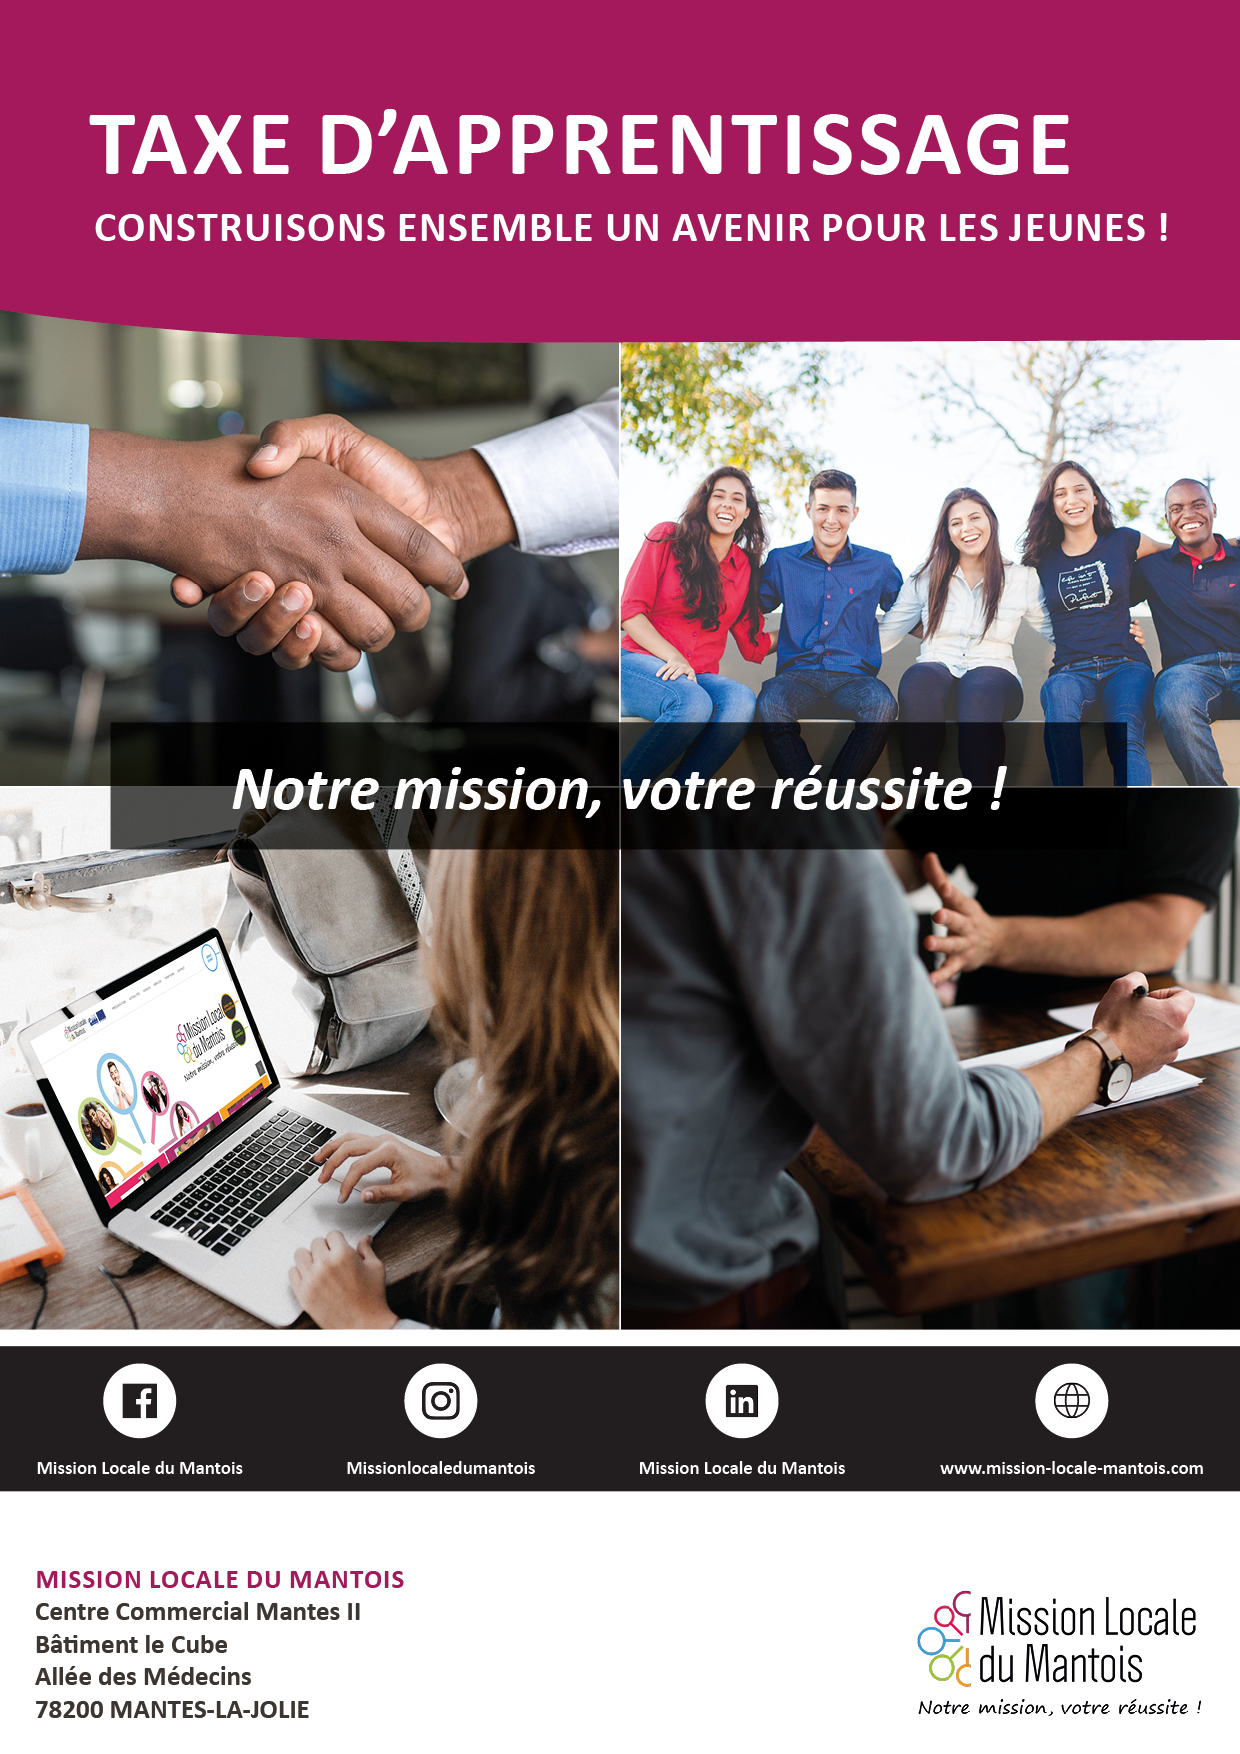 taxe_d_apprentissage_mission_locale_du_mantois